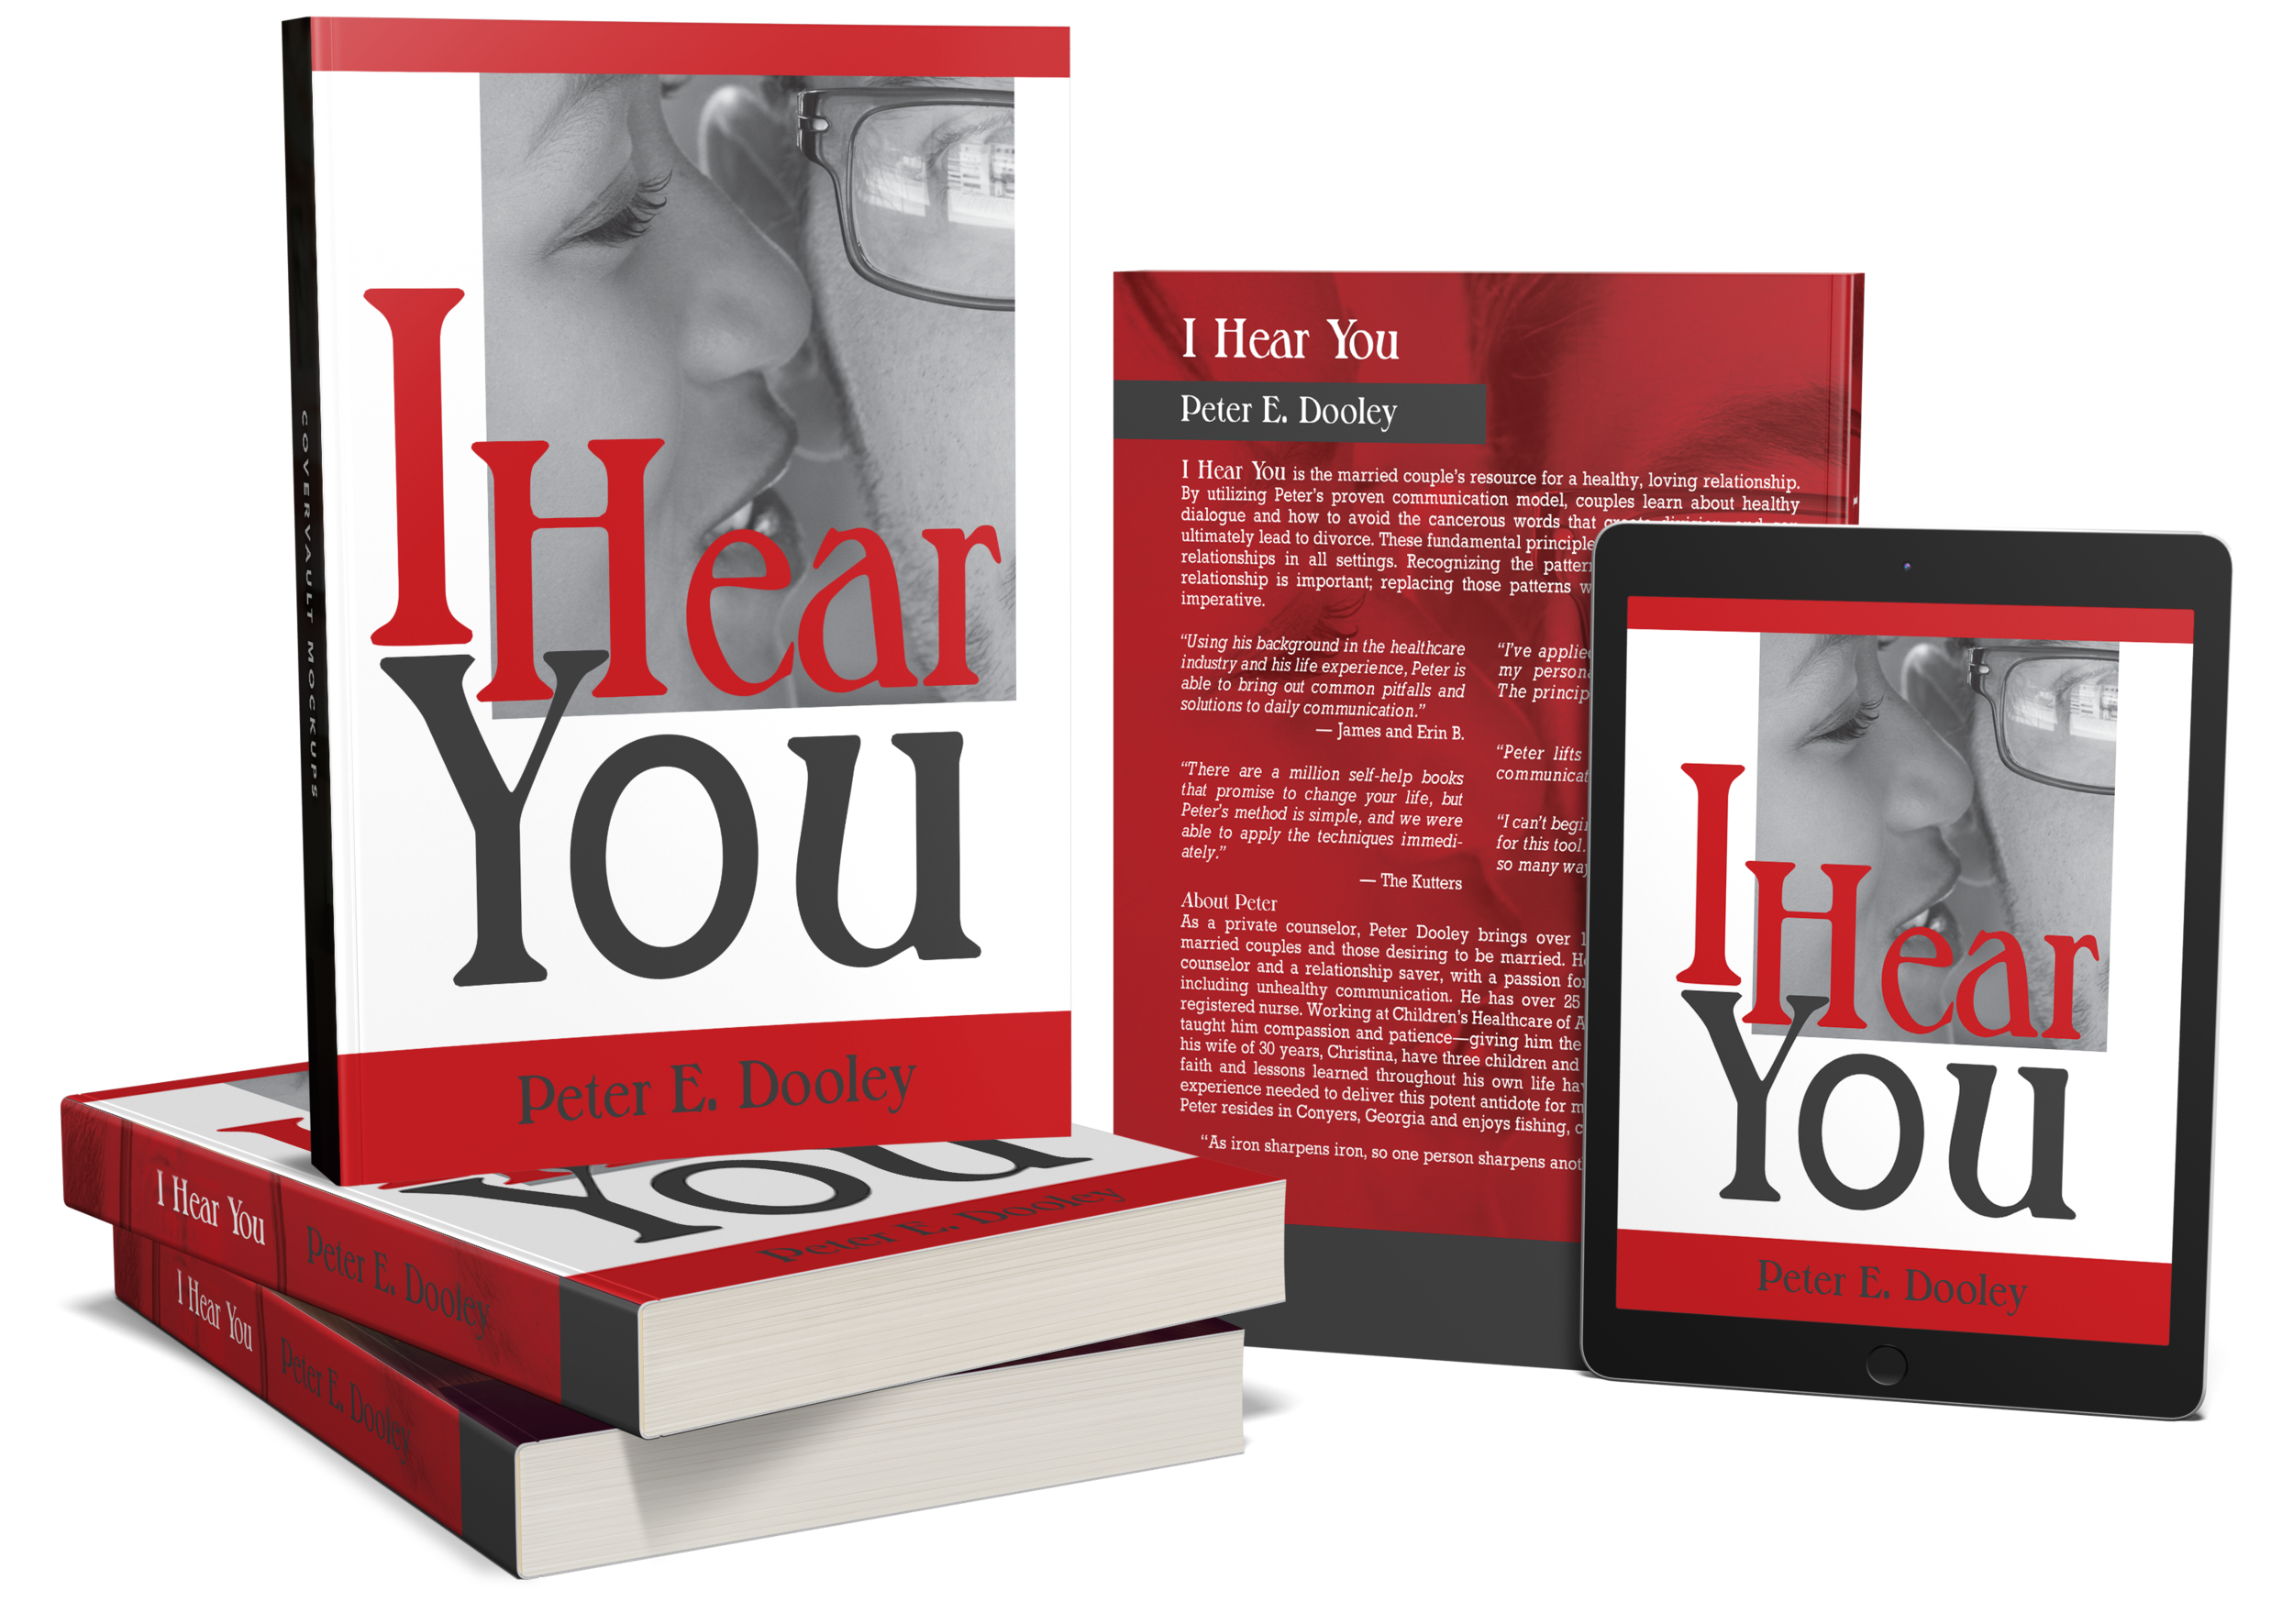 transform your relationship - I Hear You is the ultimate communication guide for healthy, loving relationships, written by counselor, Peter E. Dooley.